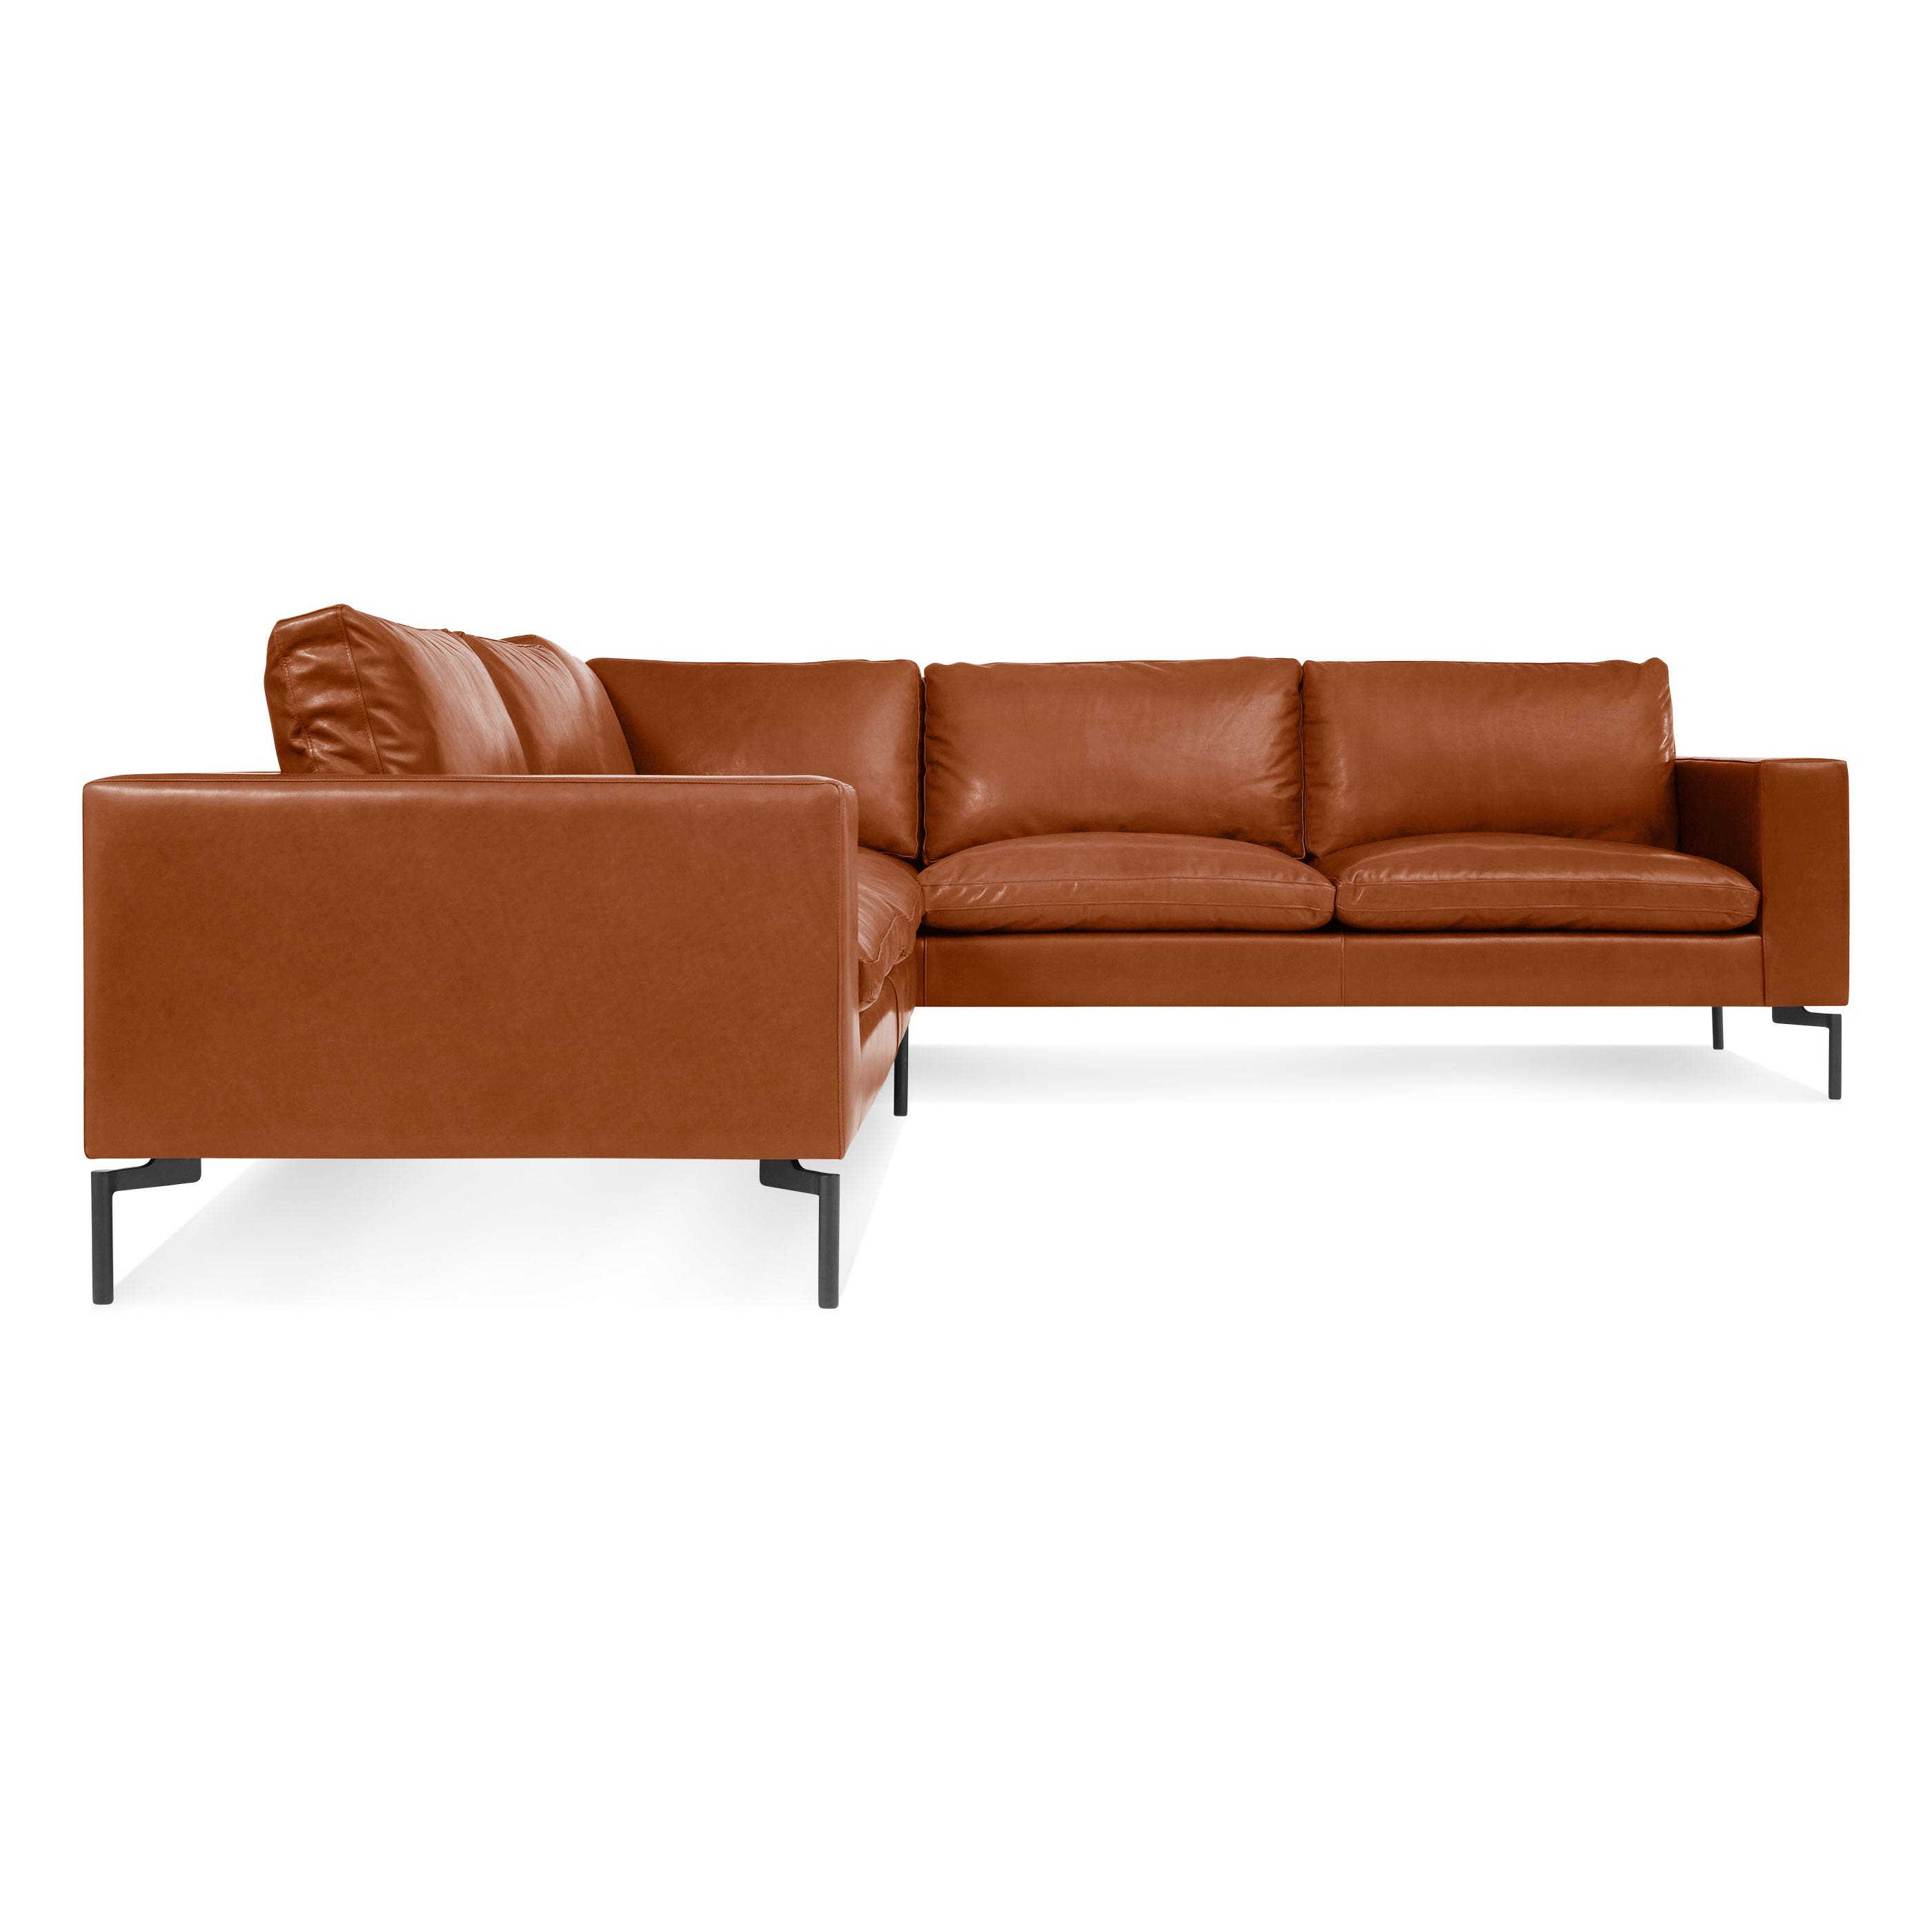 couch piece small right products sofa ashley patina sectional cuddler rotmans with item number furniture